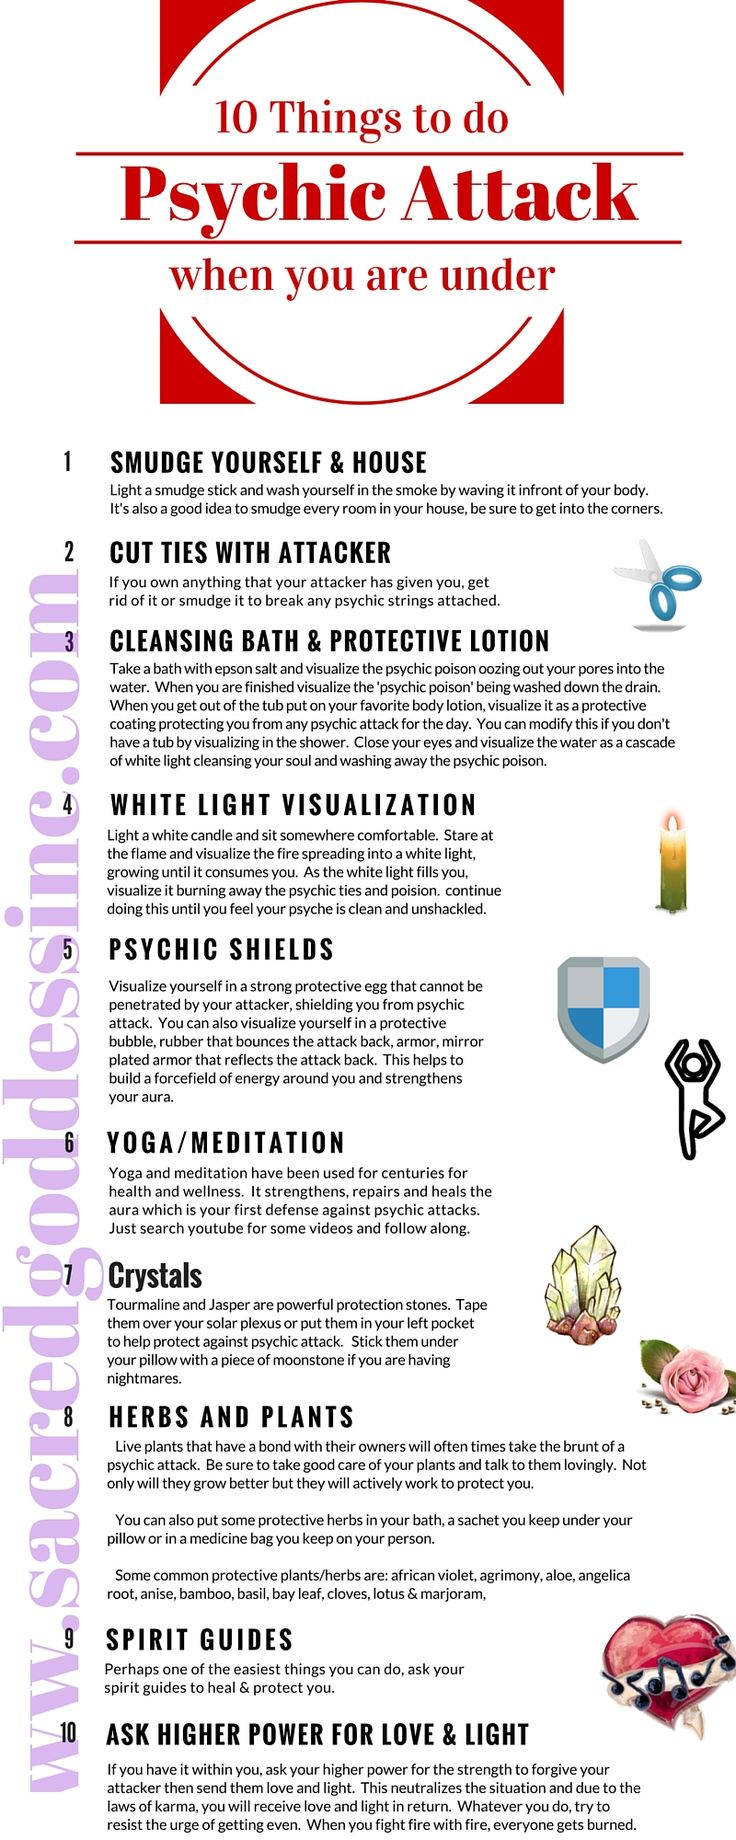 Yesterday I went over 10 Signs of Psychic Attack, so it seems fitting to talk about what you can do to protect yourself if you feel you are under Psychic Att